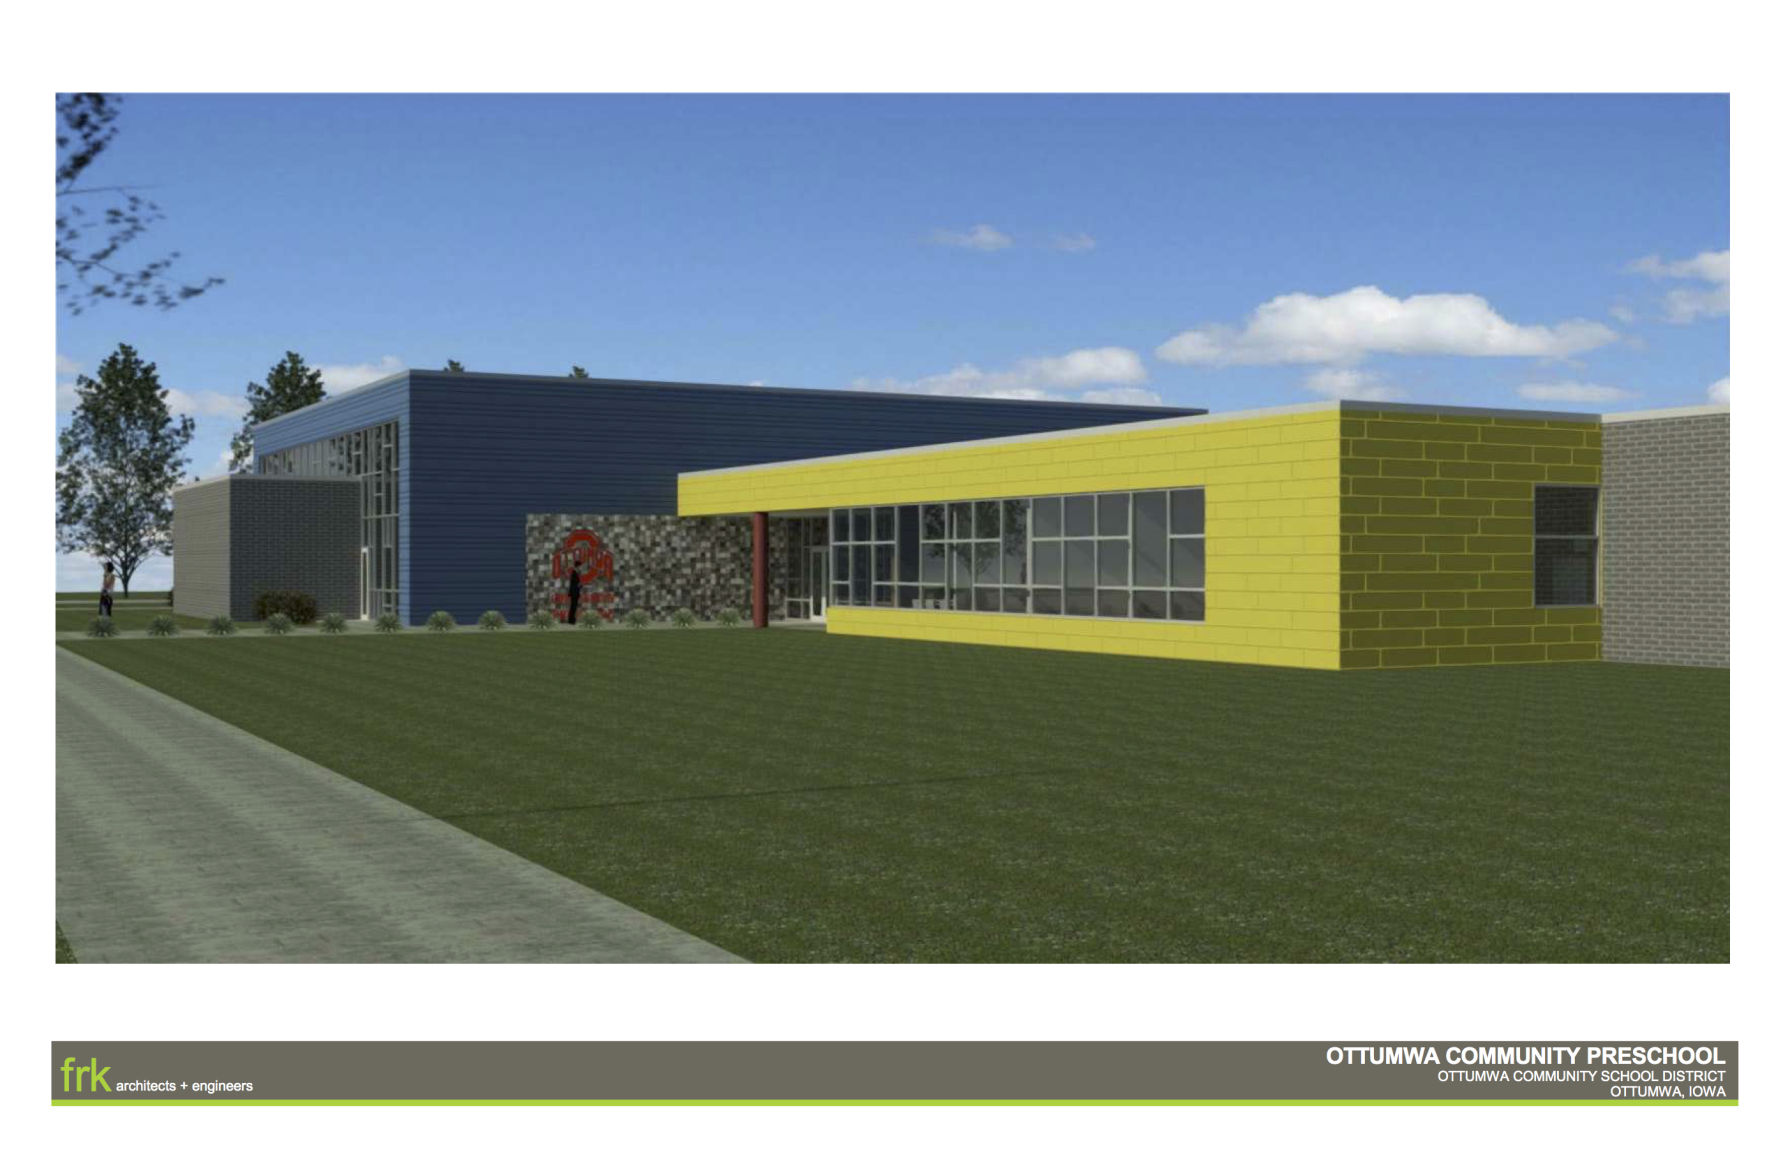 building superintendent resume%0A     the first colored concept art of the new preschool is certainly not  timid  Bright steel panels would liven up the building meant for Ottumwa u    s